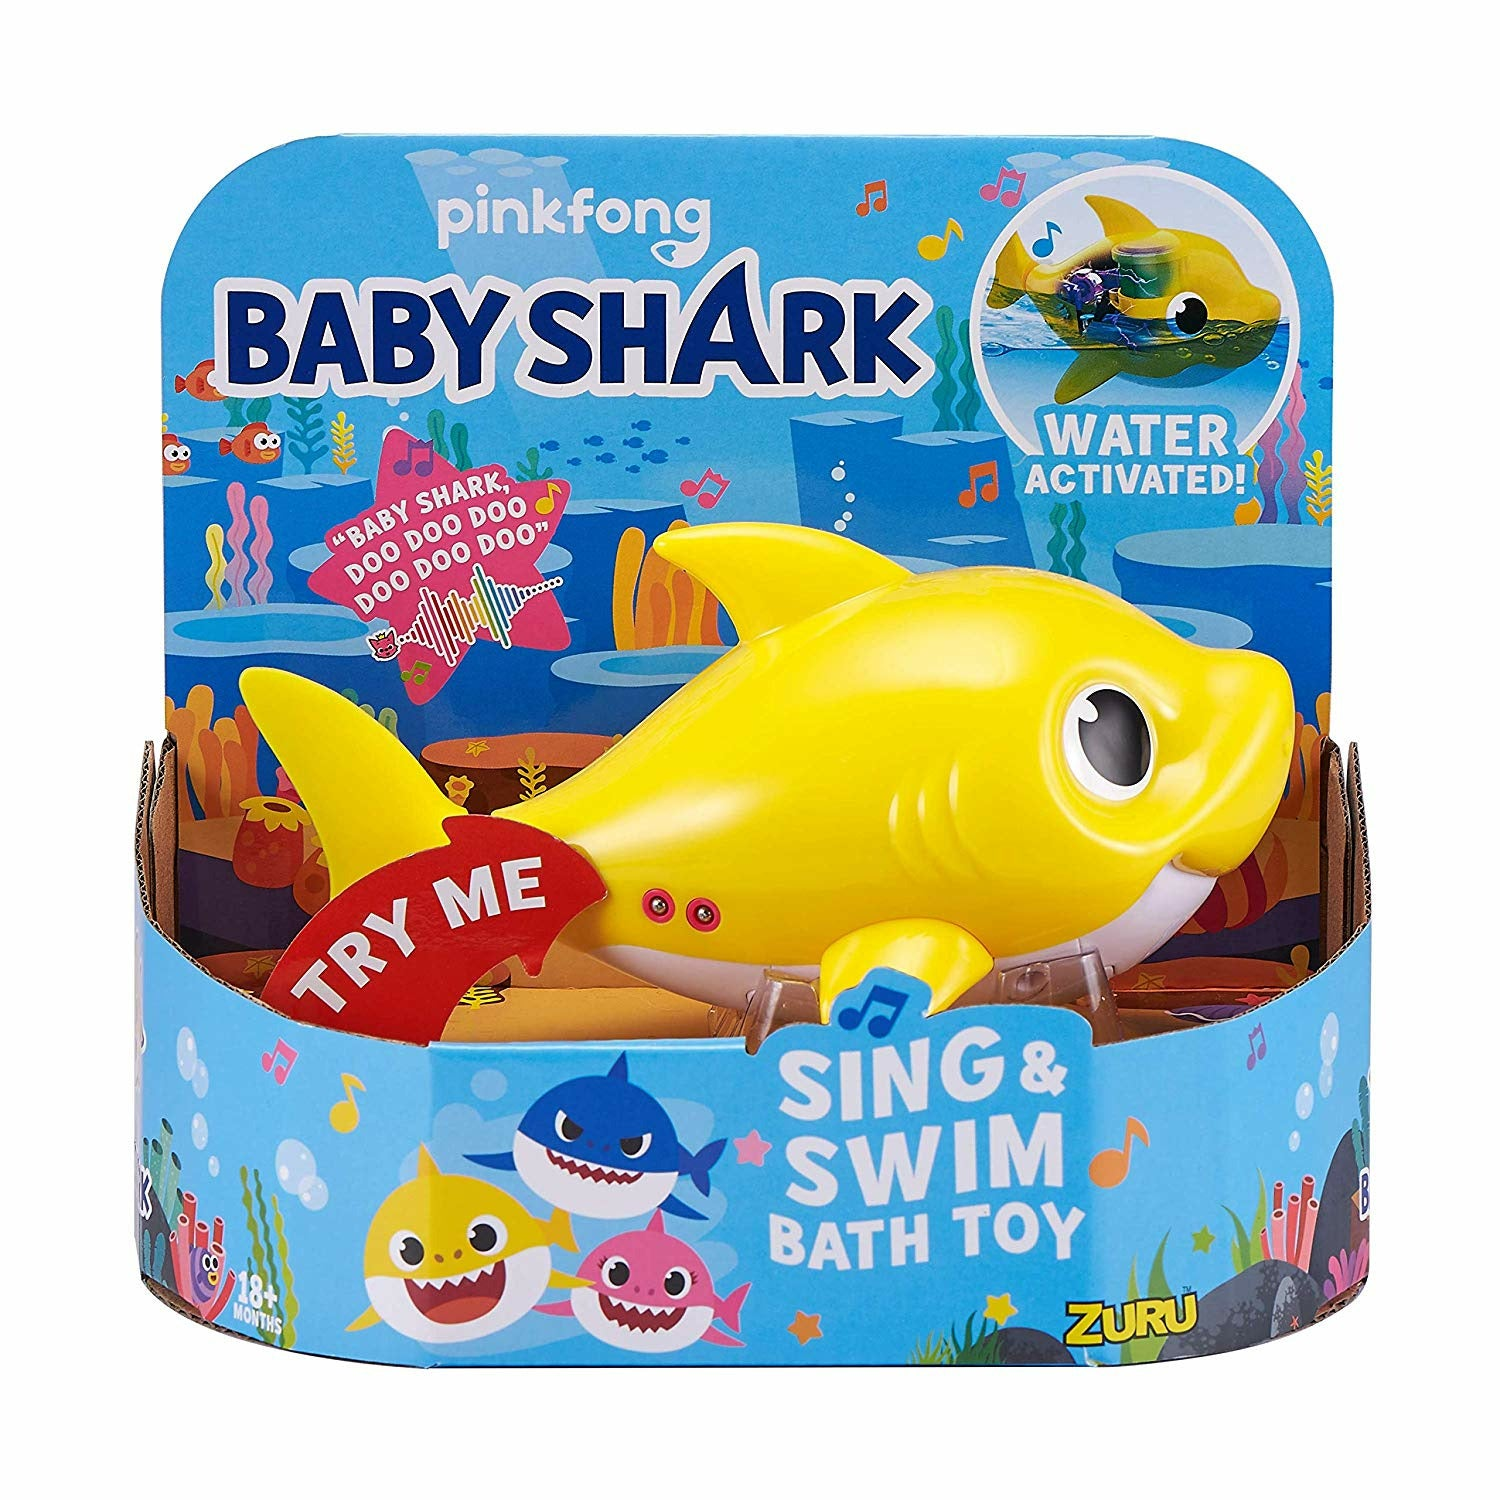 Baby Shark Yellow Robo Alive Junior Sing & Swim Bath Toy